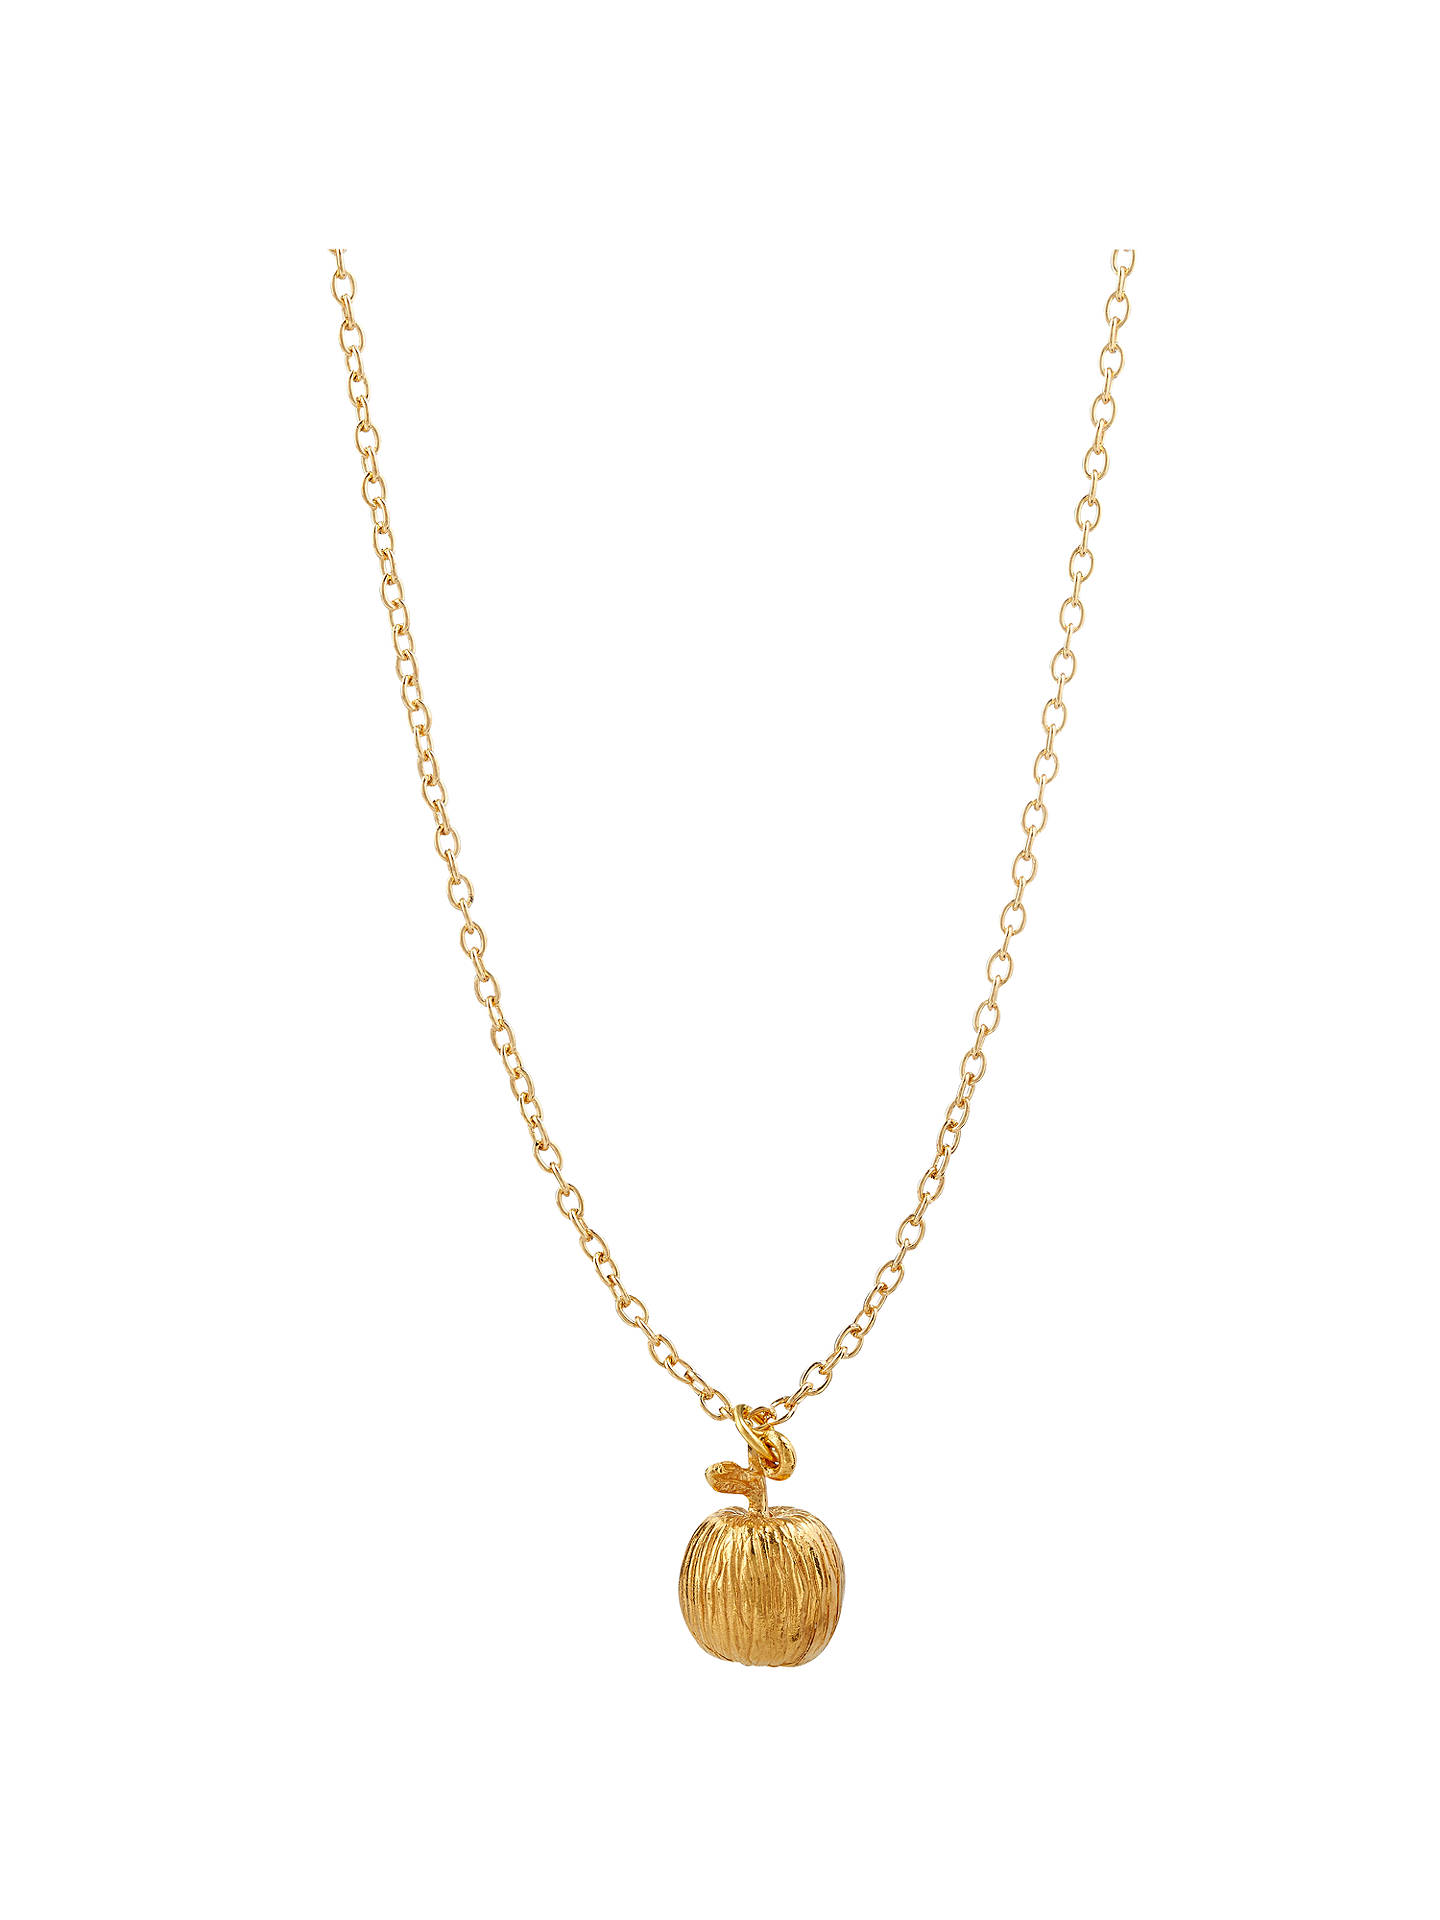 Mirabelle 22ct gold plated simple long chain apple pendant necklace buymirabelle 22ct gold plated simple long chain apple pendant necklace gold online at johnlewis aloadofball Gallery